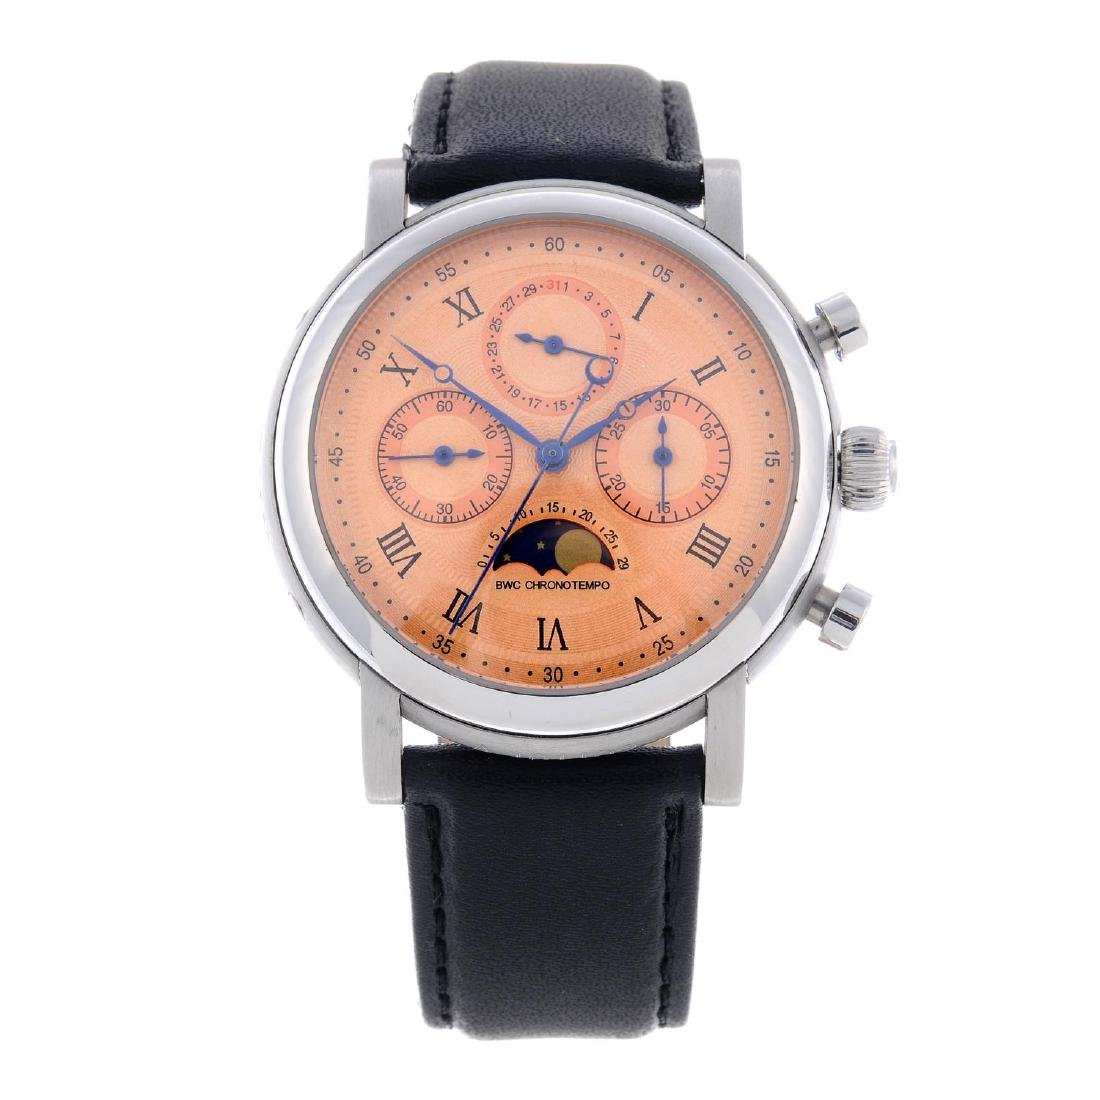 BELGRAVIA WATCH CO. - a limited edition gentleman's